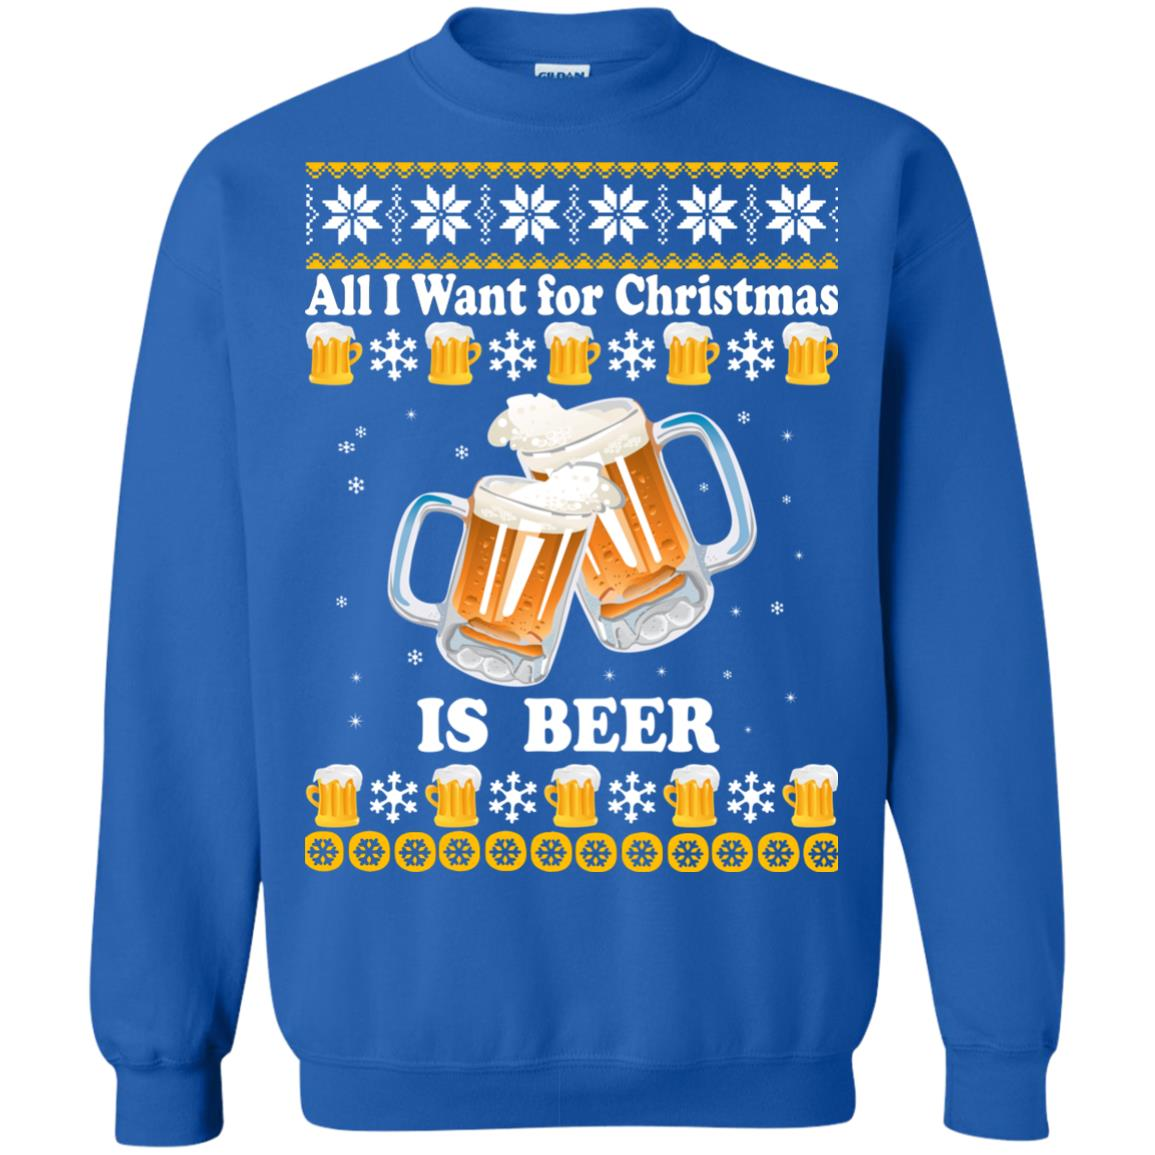 Beer Christmas Sweater.All I Want For Christmas Is Beer Ugly Sweater Shirt Icestork